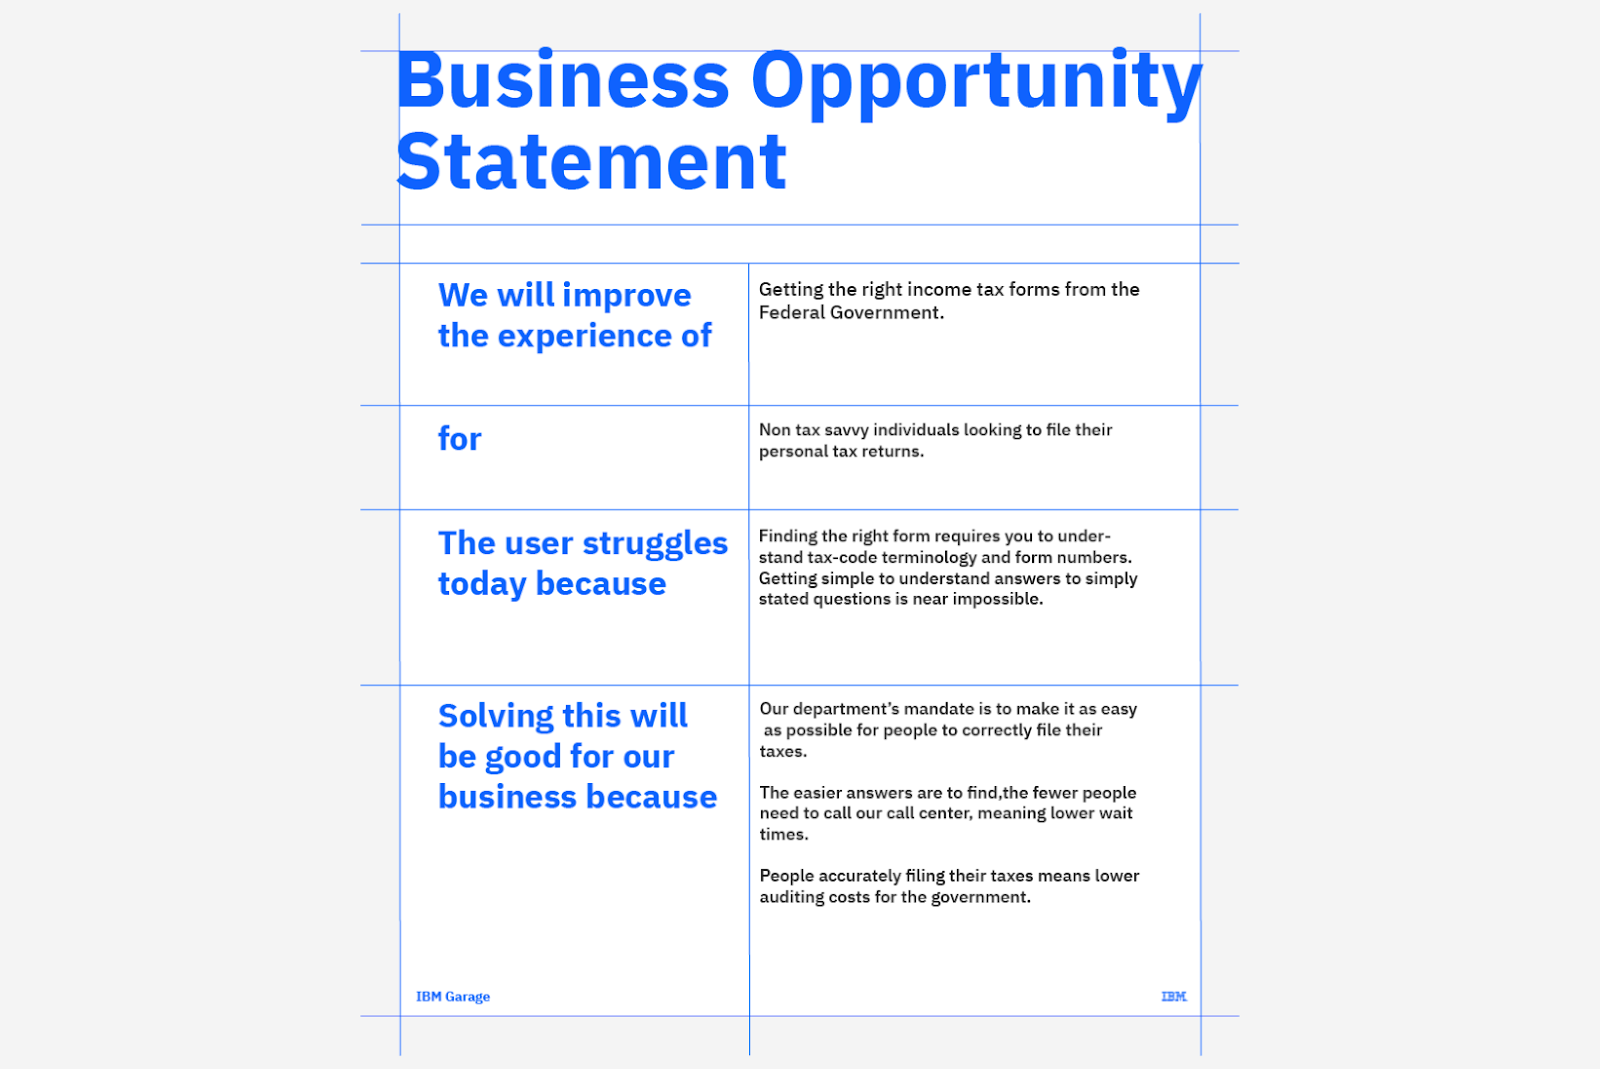 Business Opportunity Statement